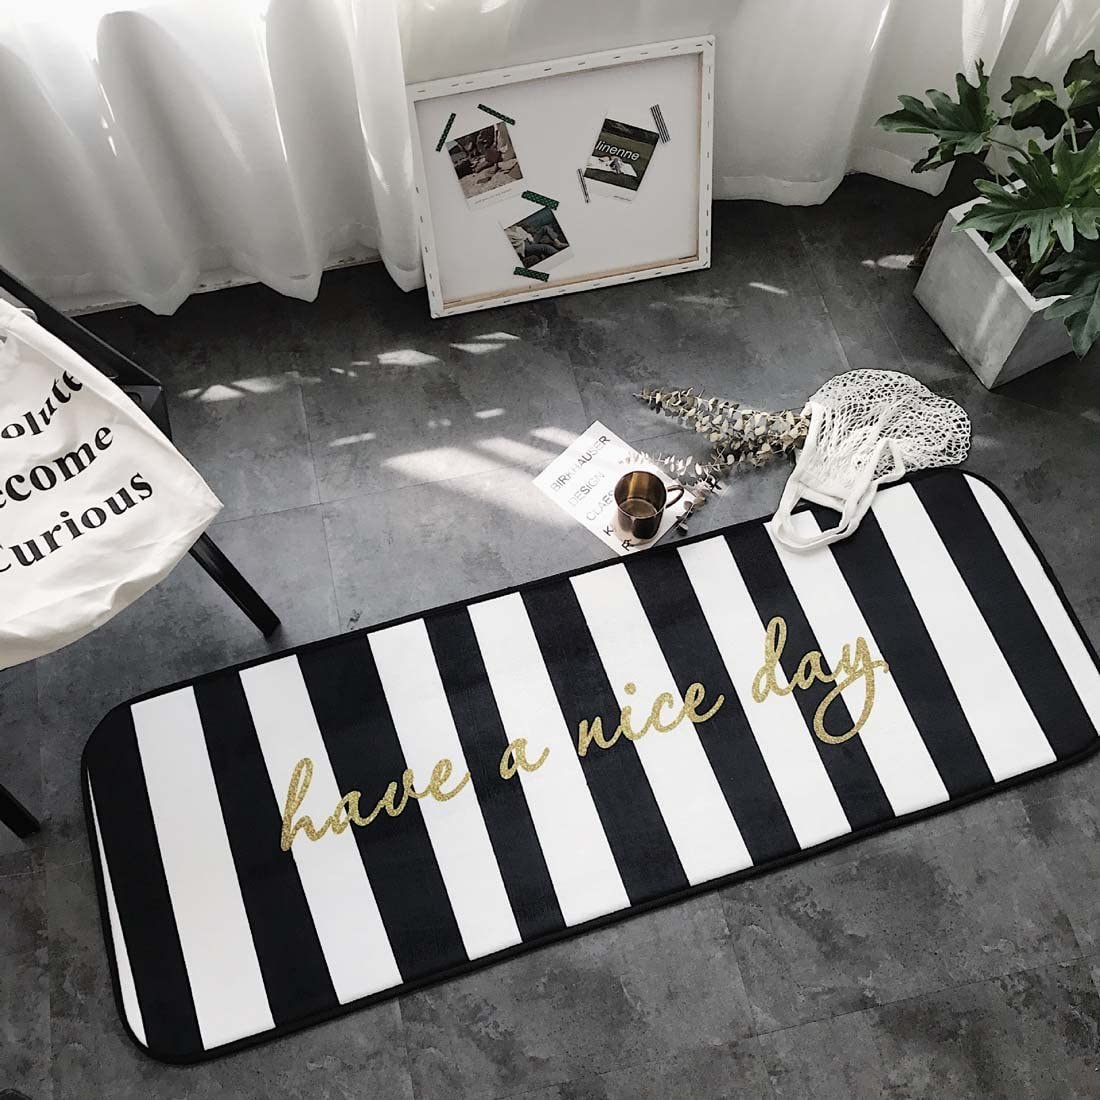 Home and Kitchen Rugs Door Mat Black and White Striped Non Slip/Skip Runner  Decorative Entrance Floor Carpet for Bathroom Bedroom-Have a Nice Day